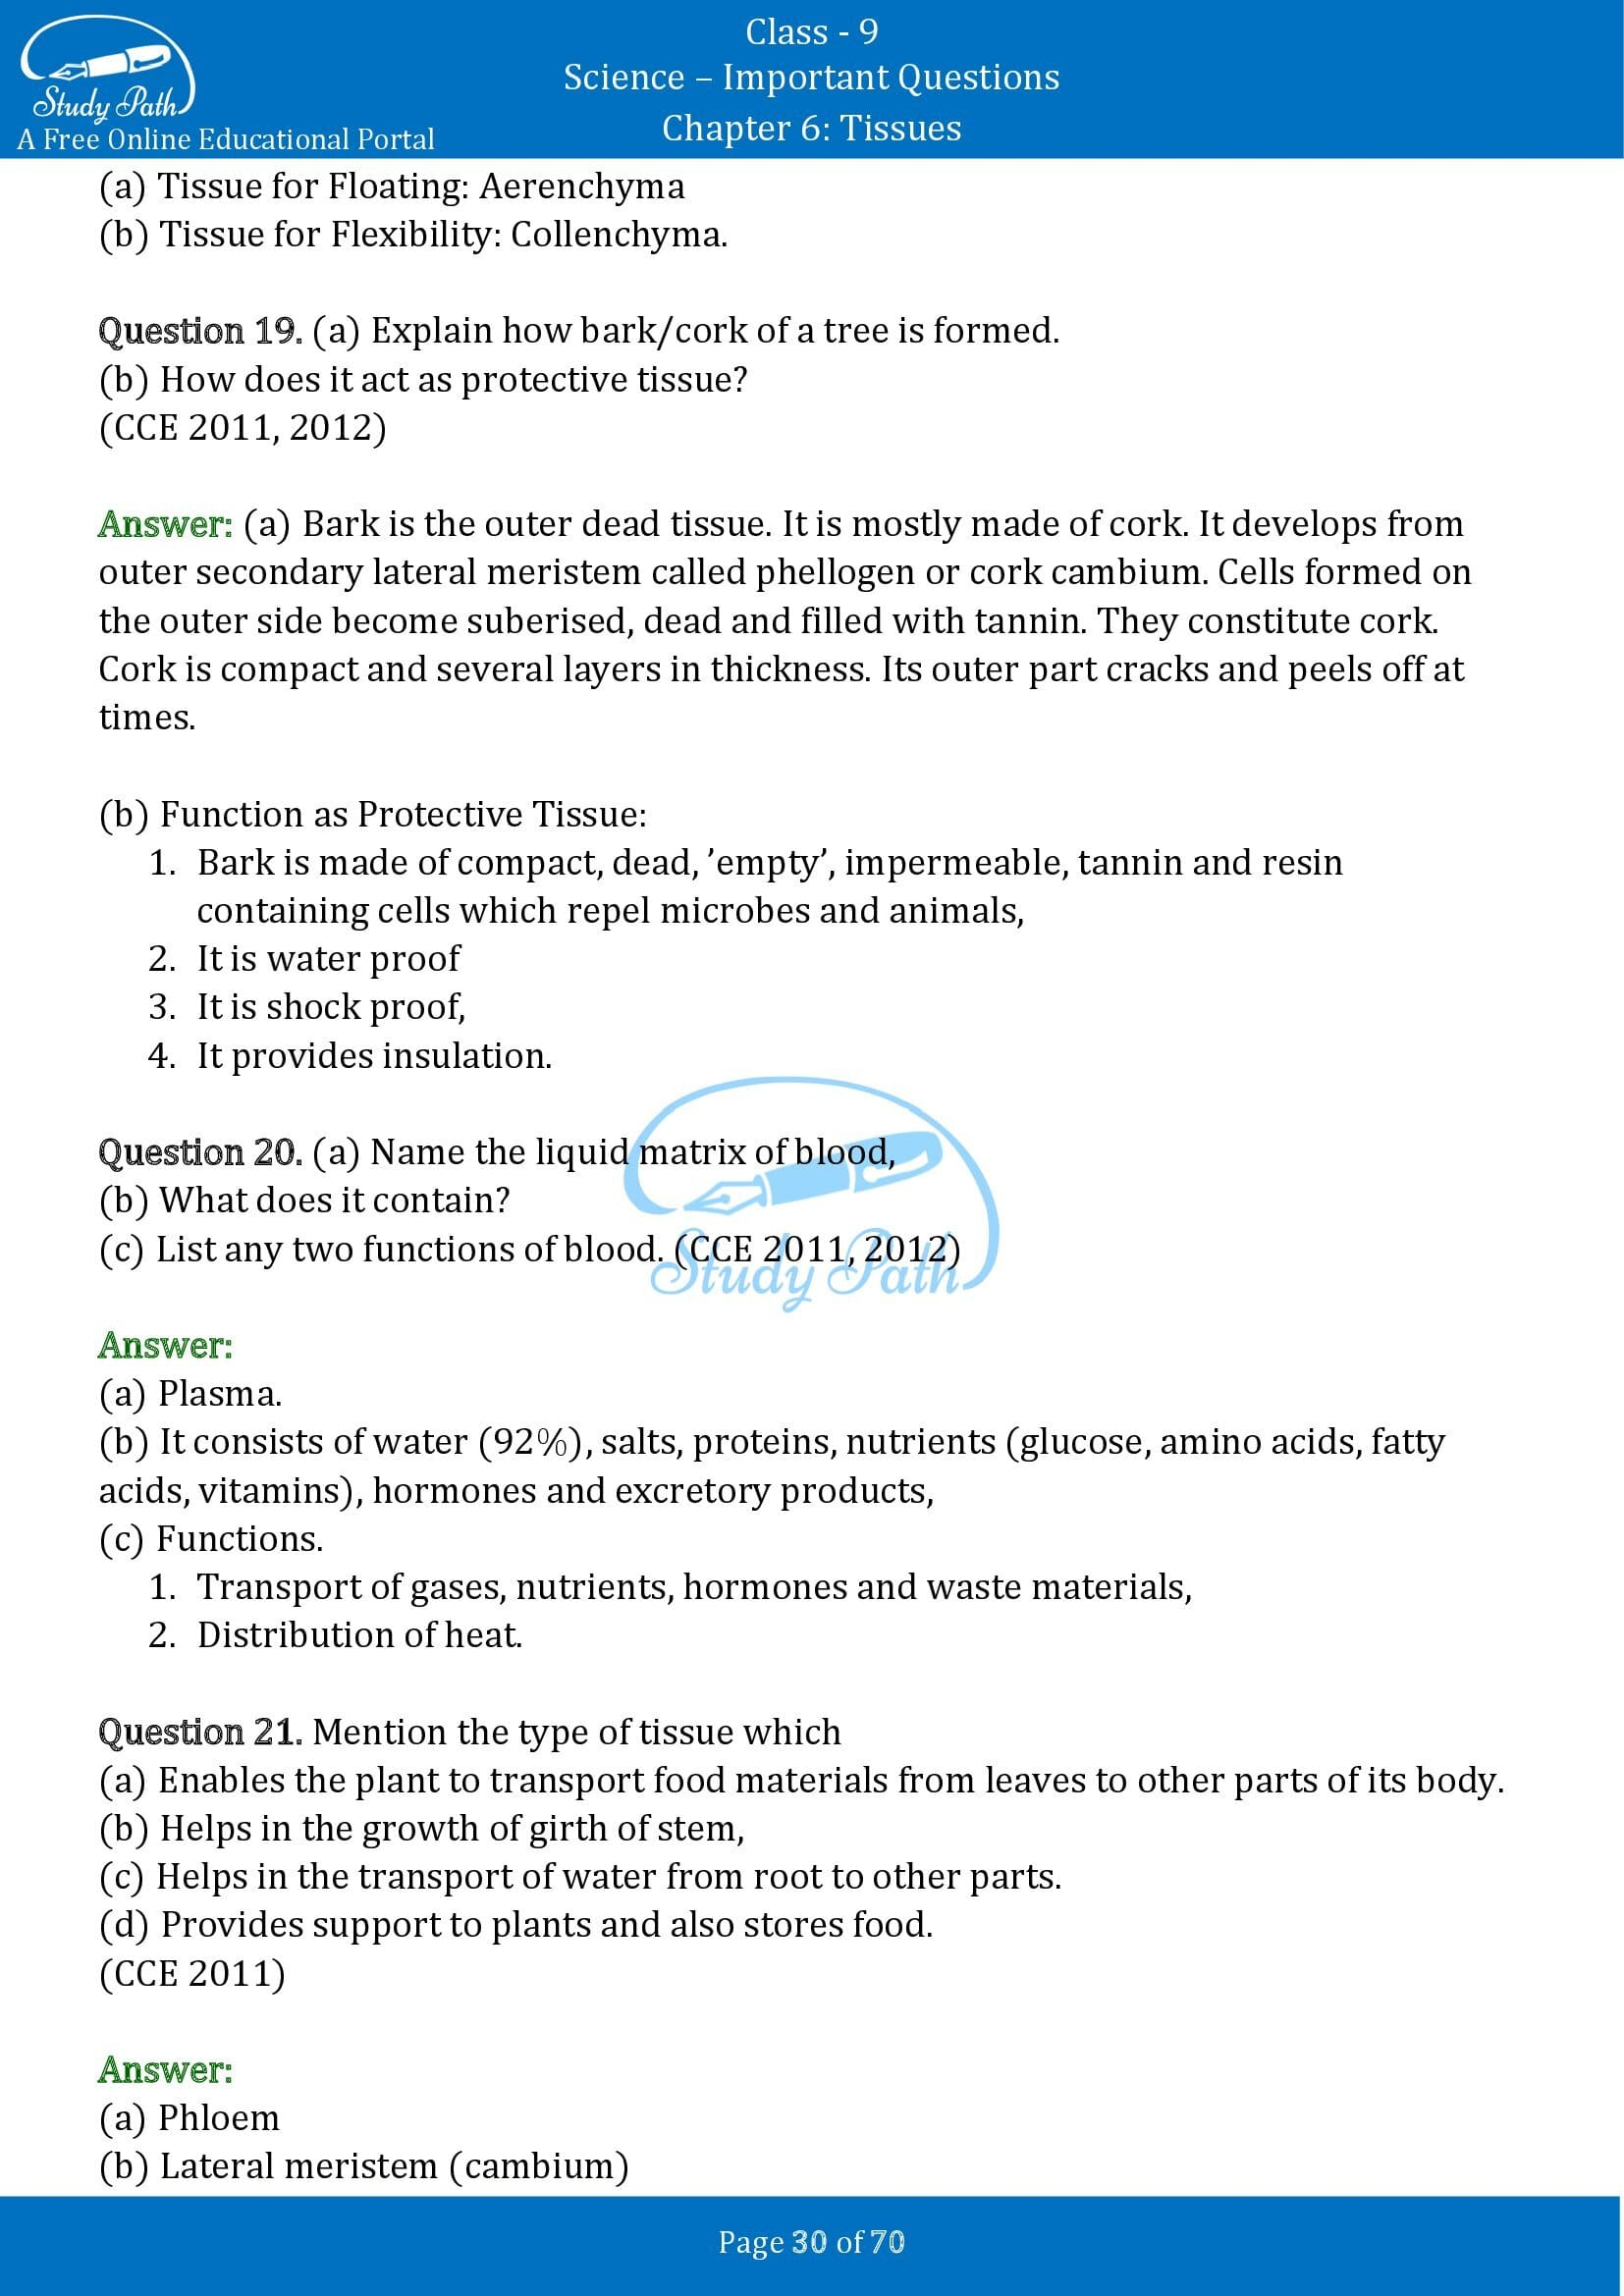 Important Questions for Class 9 Science Chapter 6 Tissues 00030